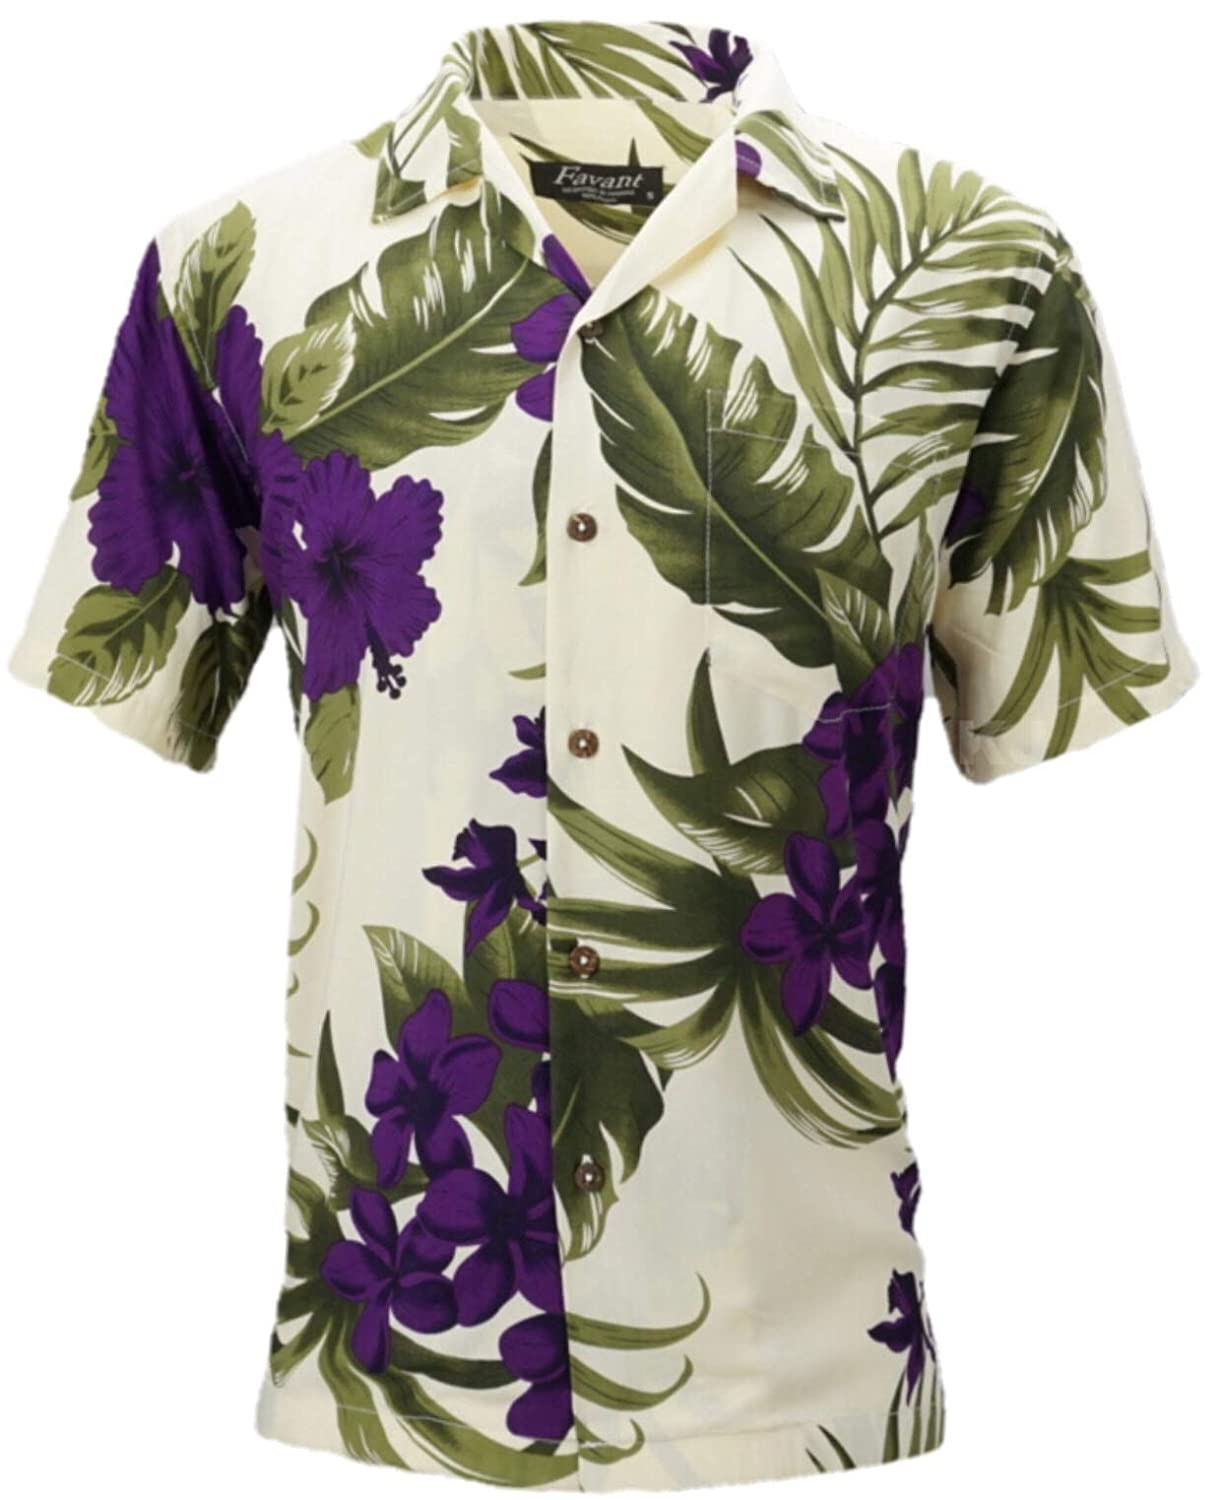 707ddd55 Stylish and Original Hawaiian Aloha Shirt Design looks great everywhere you  go. Lightweight, High Quality Fabric and Loose Fit will keep you cool and  ...